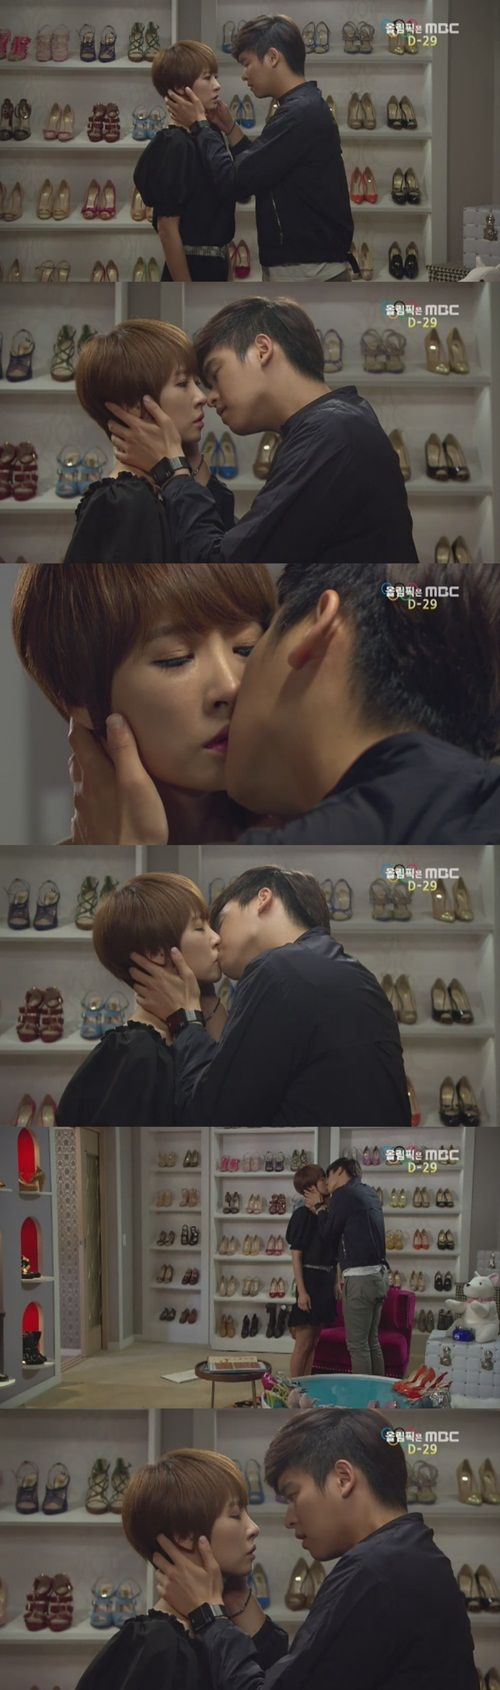 [Spoiler] 'I Do, I Do'  - Now I really can't wait to see ep 10 today!!! <3 <3 <3  There's a really good chance I'm going to step away from this and go watch it unsubbed...right now...bye! ~dongsaeng